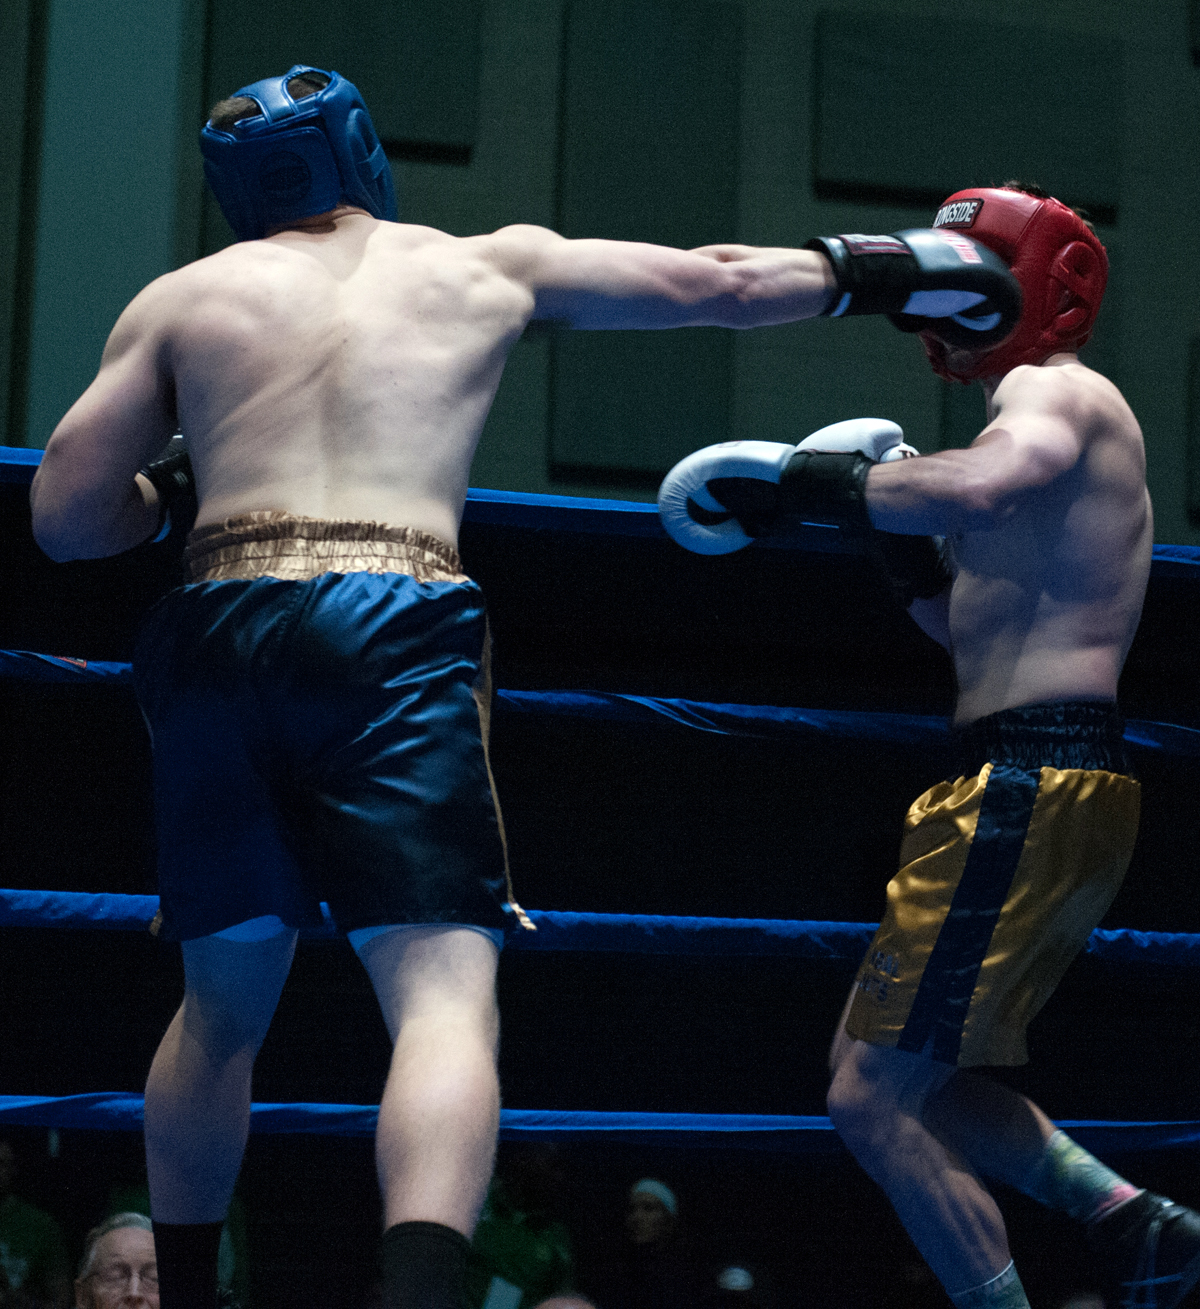 Senior Bengal Bouts captain Bryan Cooley, left, throws a jab during his semifinal victory over graduate student C.J. Pruner on Tuesday at Joyce Fieldhouse. Cooley fights for the 184-pound title tonight.